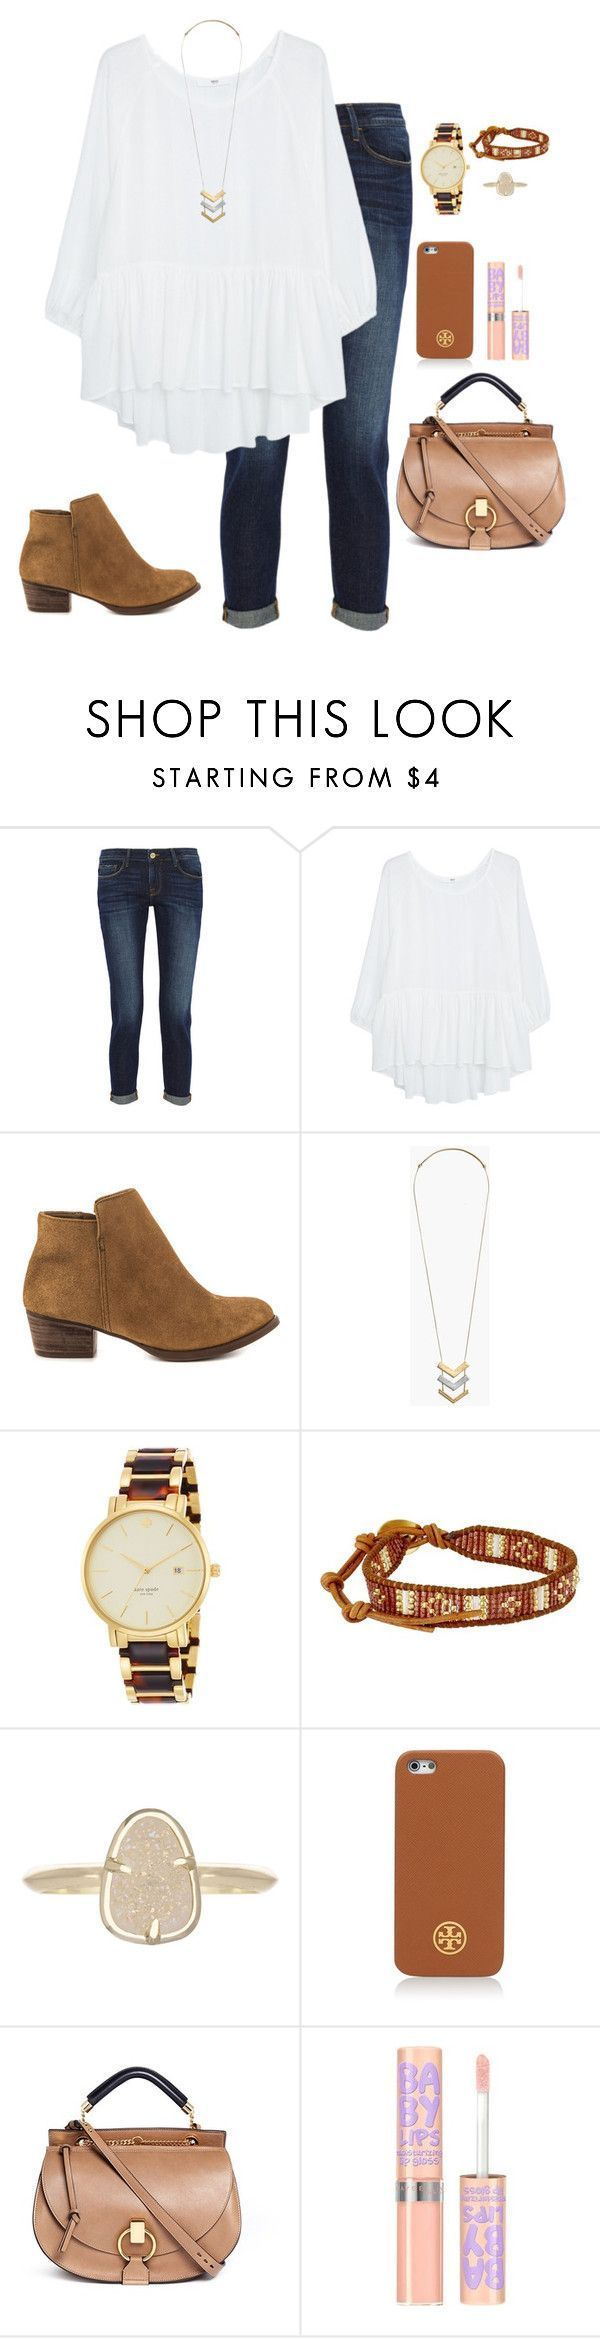 """""""shopping"""" by apemb ❤️ liked on Polyvore featuring Frame Denim, MANGO, Jessica Simpson, Madewell, Kate Spade, Chan Luu, Kendra Scott, Tory Burch, Chloé️️ and Maybelline"""